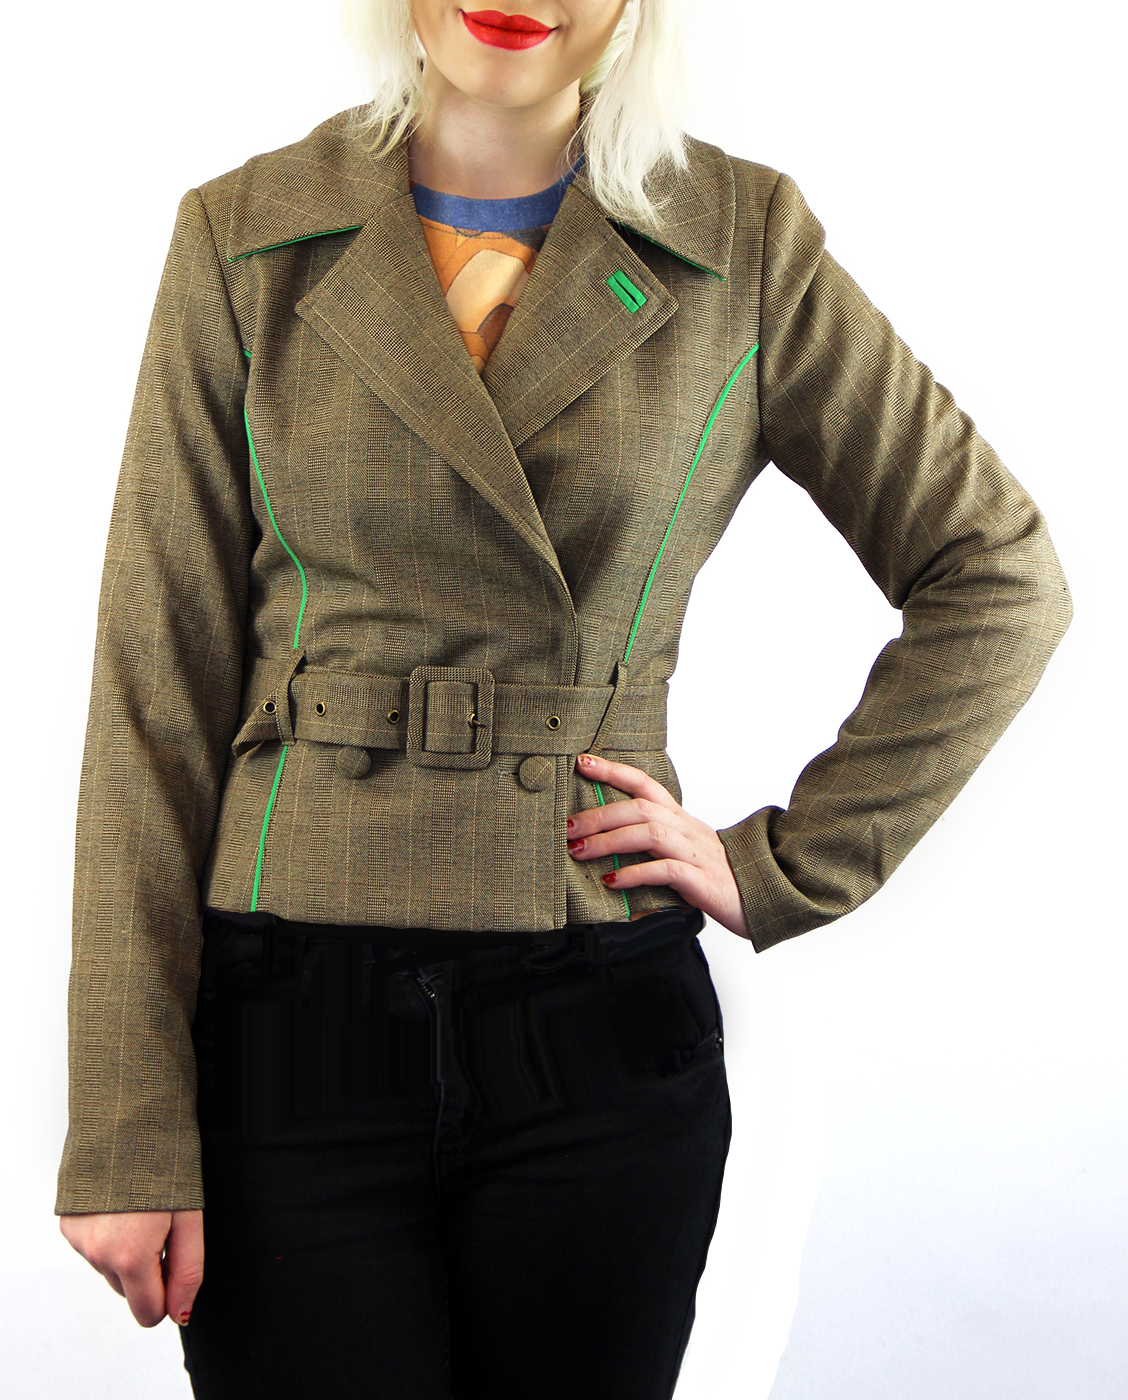 Isa WOW TO GO Retro 70s Mod Belt Fasten Blazer